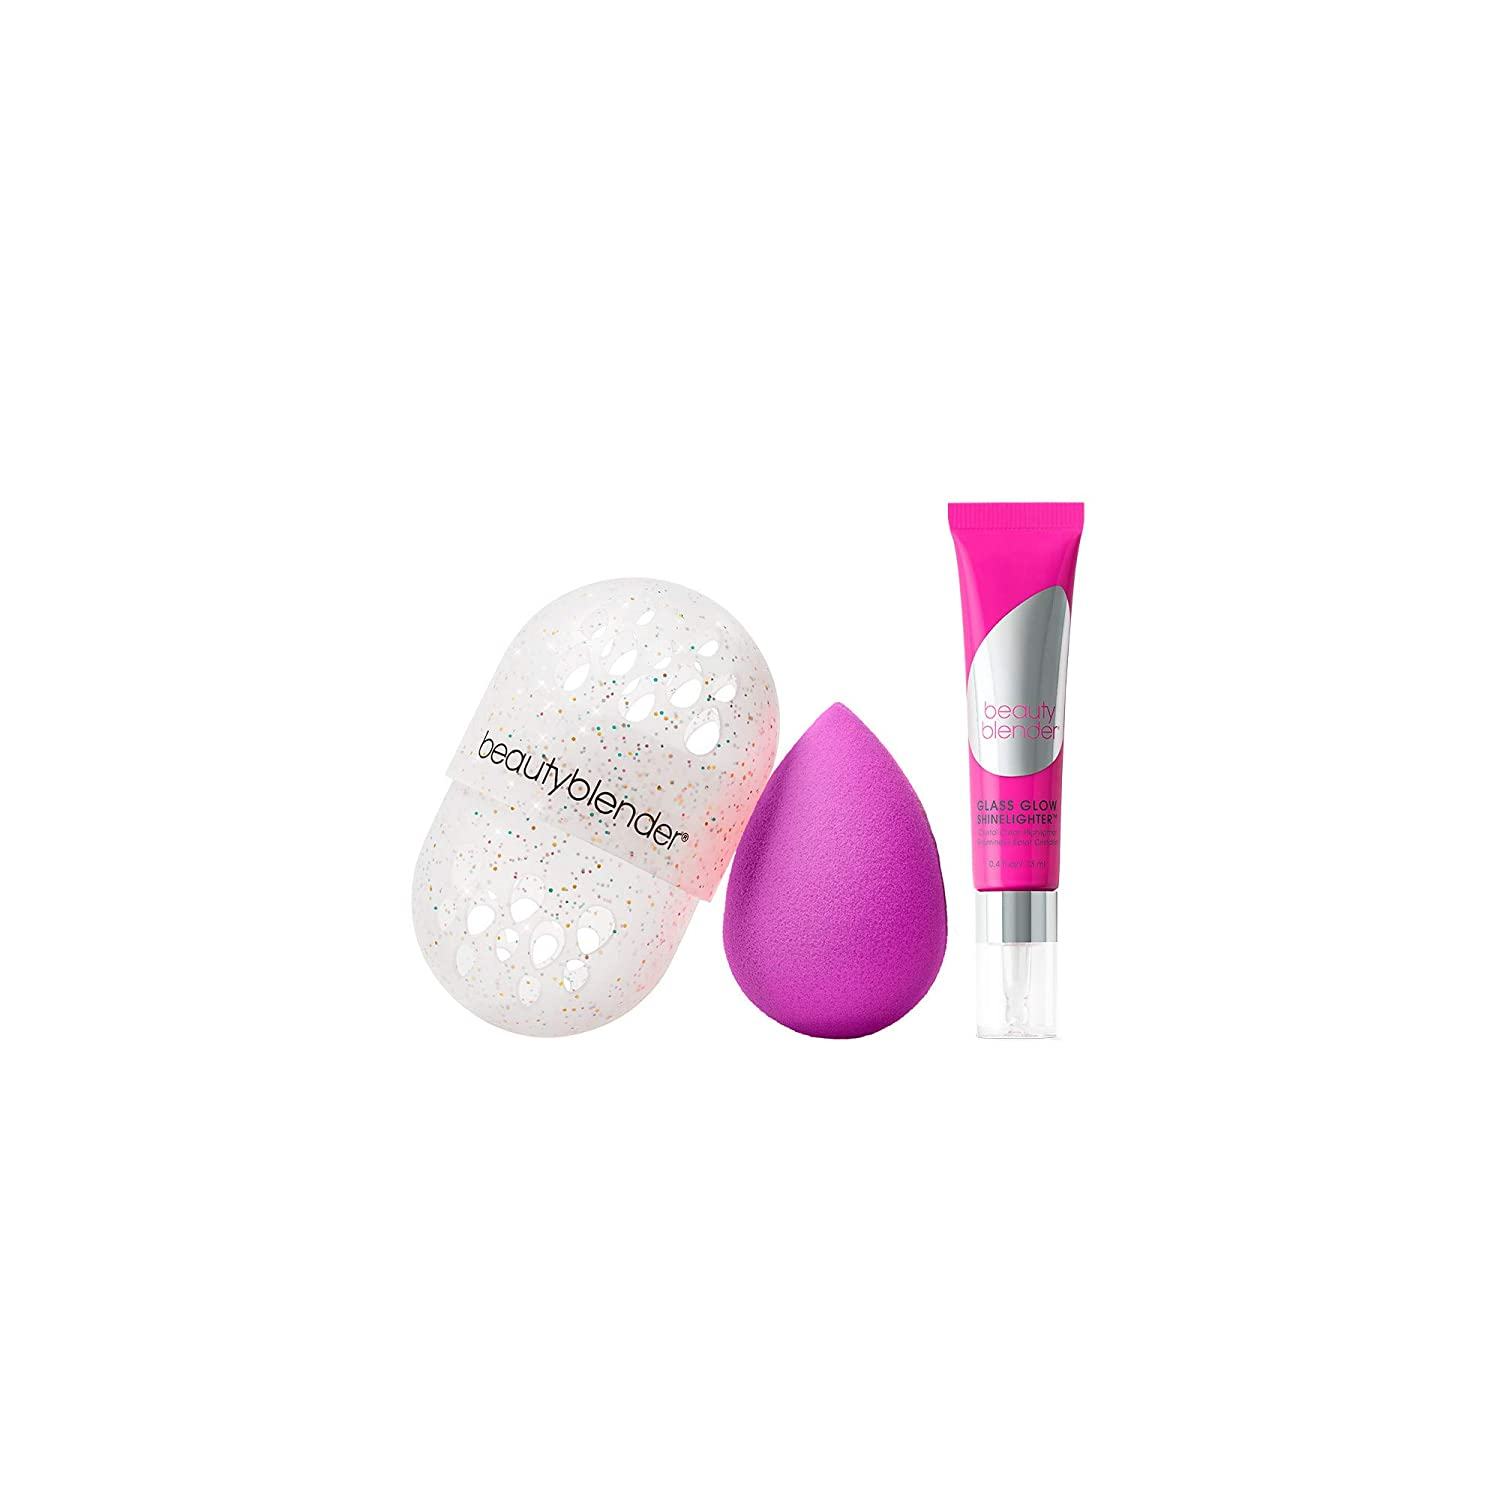 beautyblender THE GLOW UP Beauty Essentials Kit With beautyblender Original Makeup Sponge, Glass Glow Shinelighter, Blender Defender Glitter, Cruelty-Free, Vegan and Made in the USA